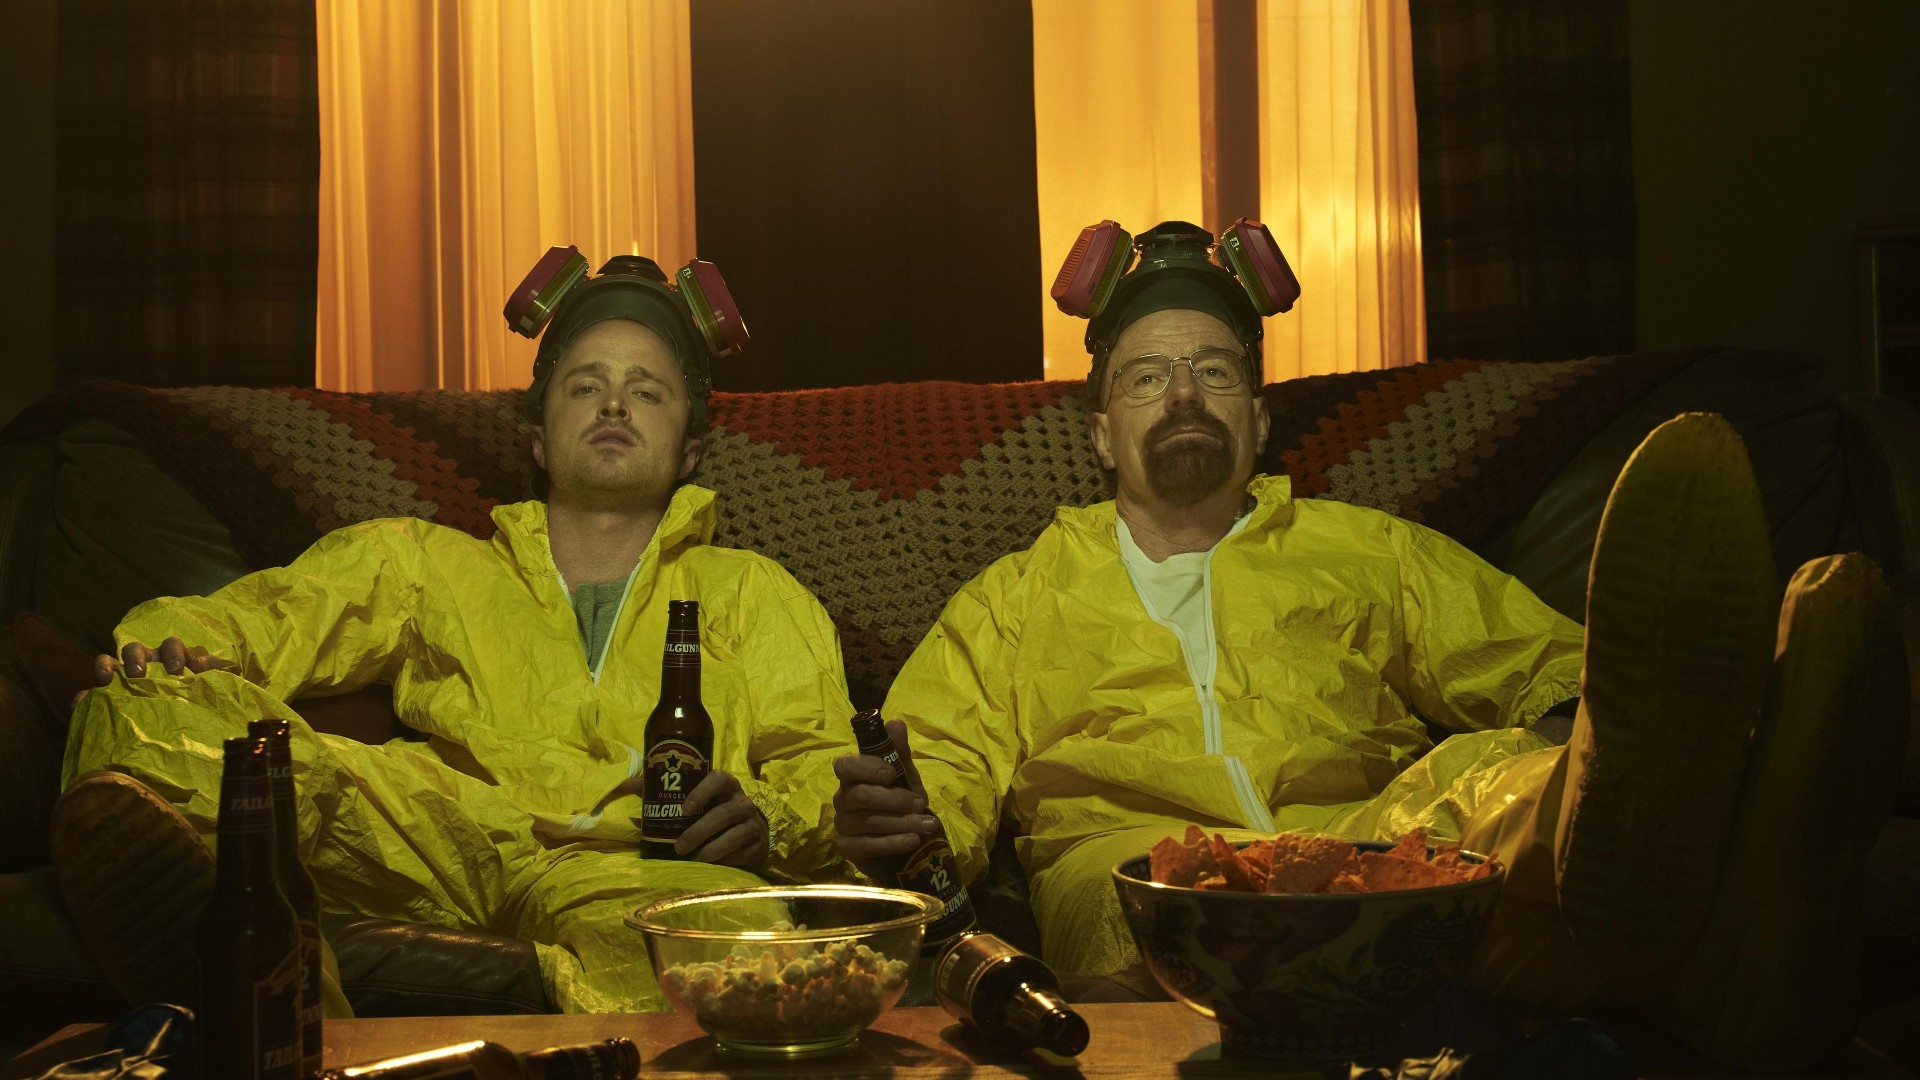 tv-breaking_bad-2008_2013-jesse_pinkman-aaron_paul-accessories-s05e03-hazmat_suit